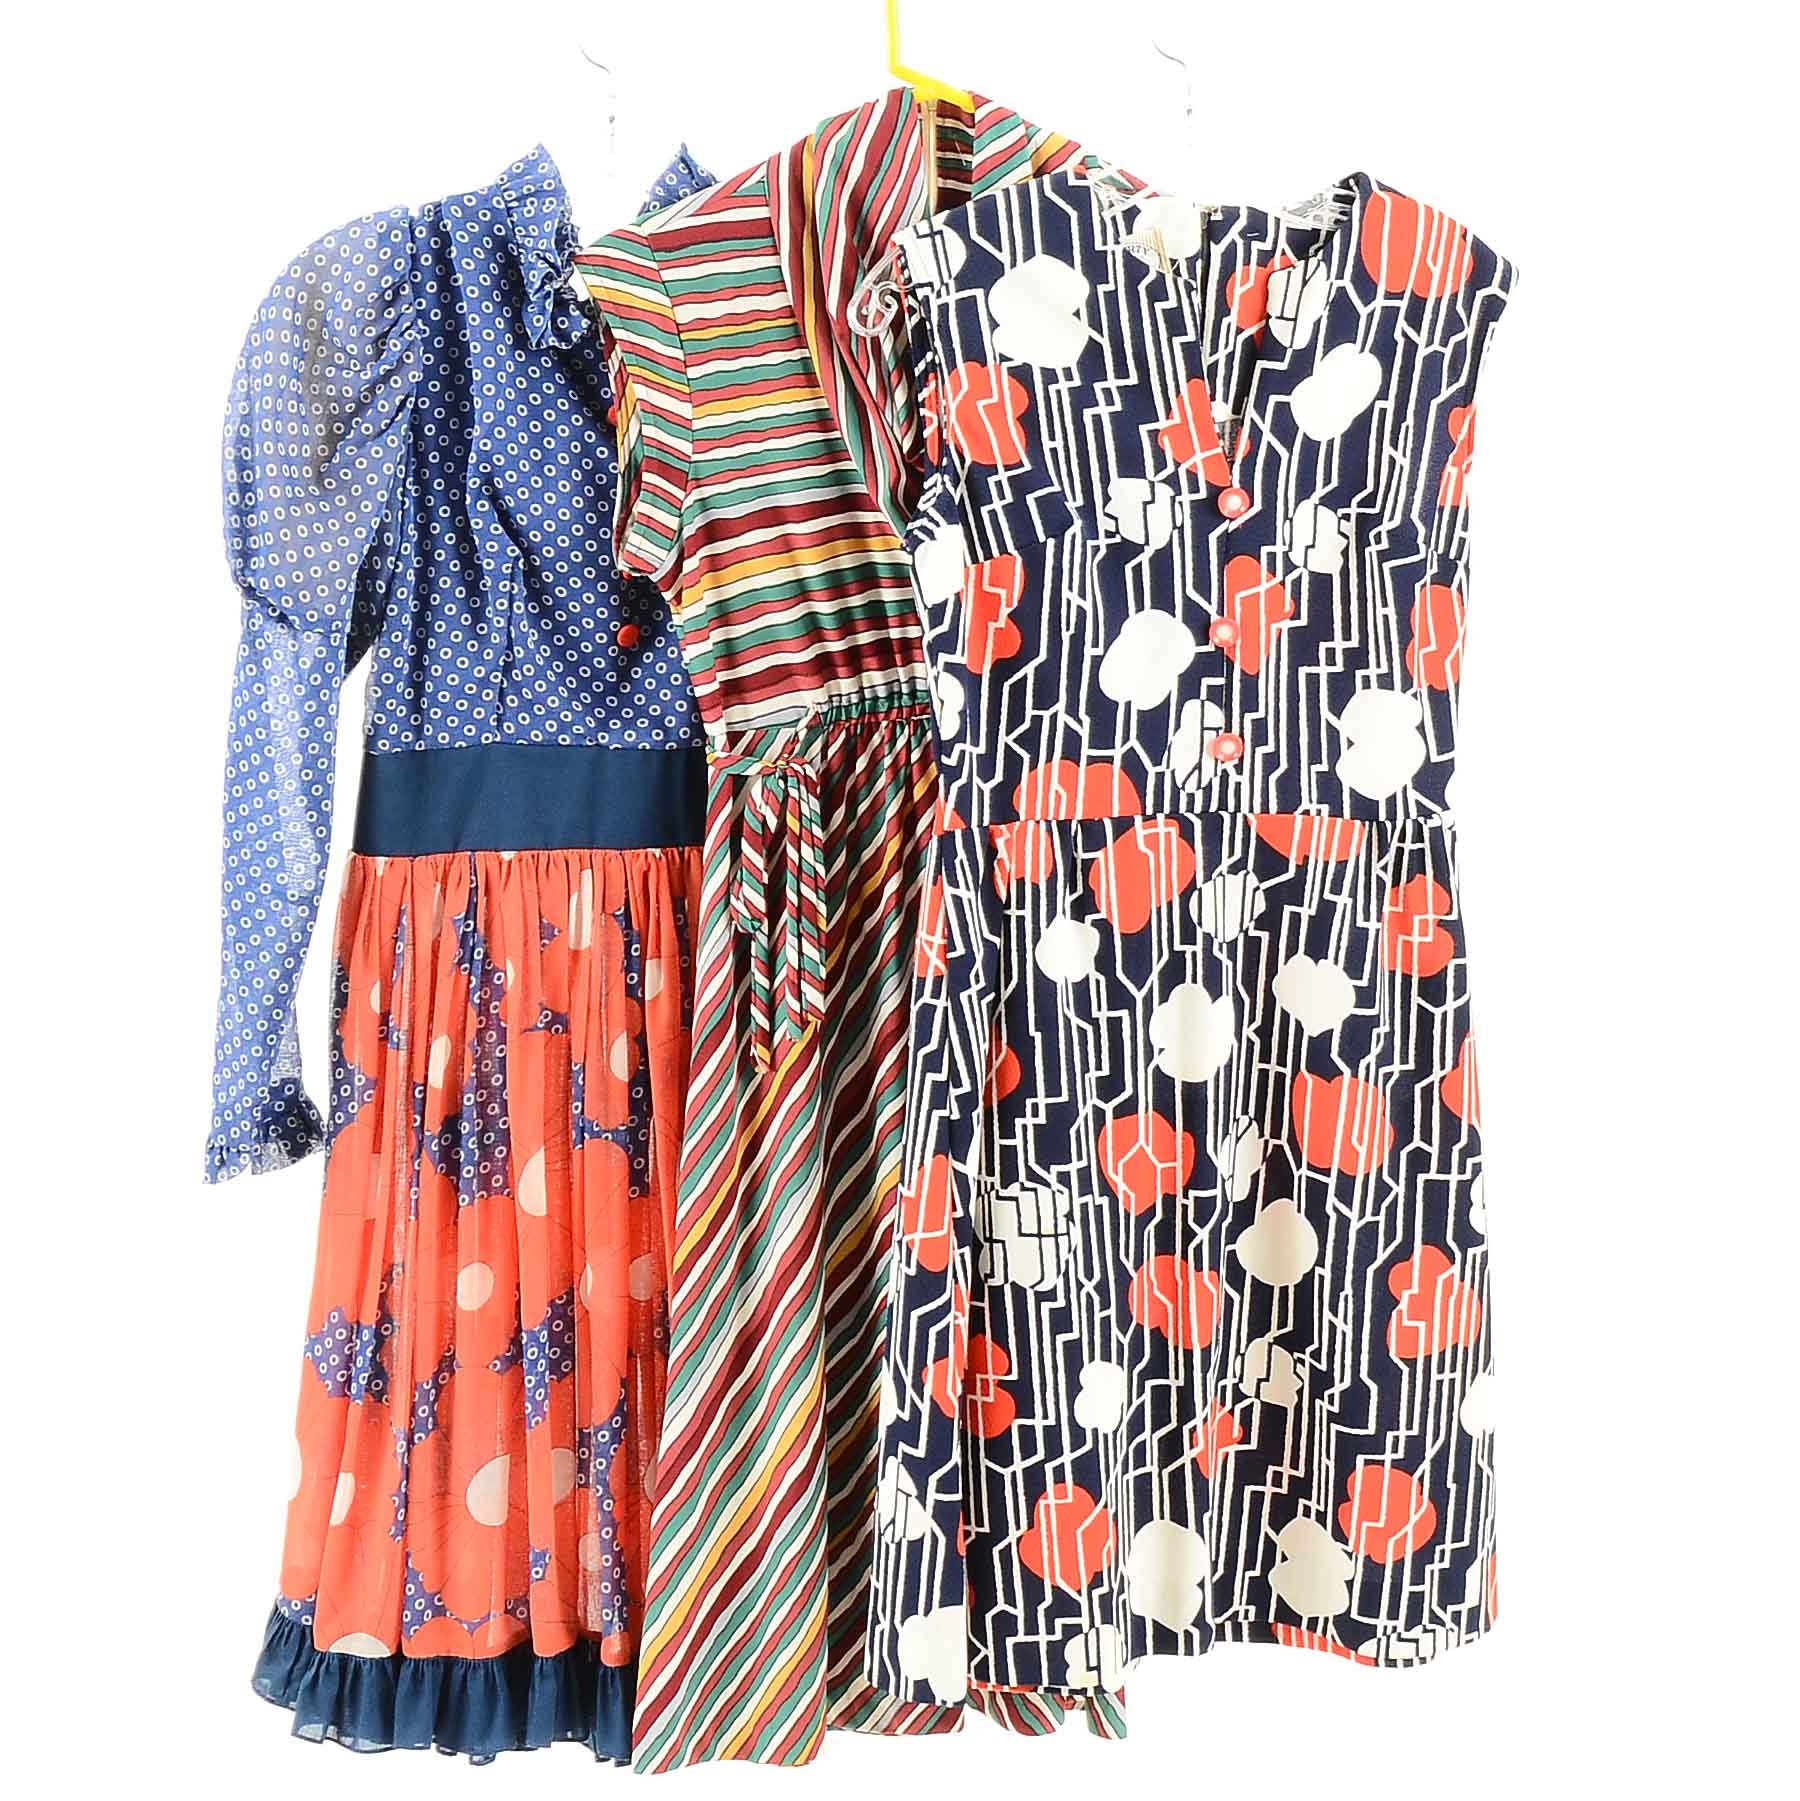 Collection of Colorful Vintage Dresses